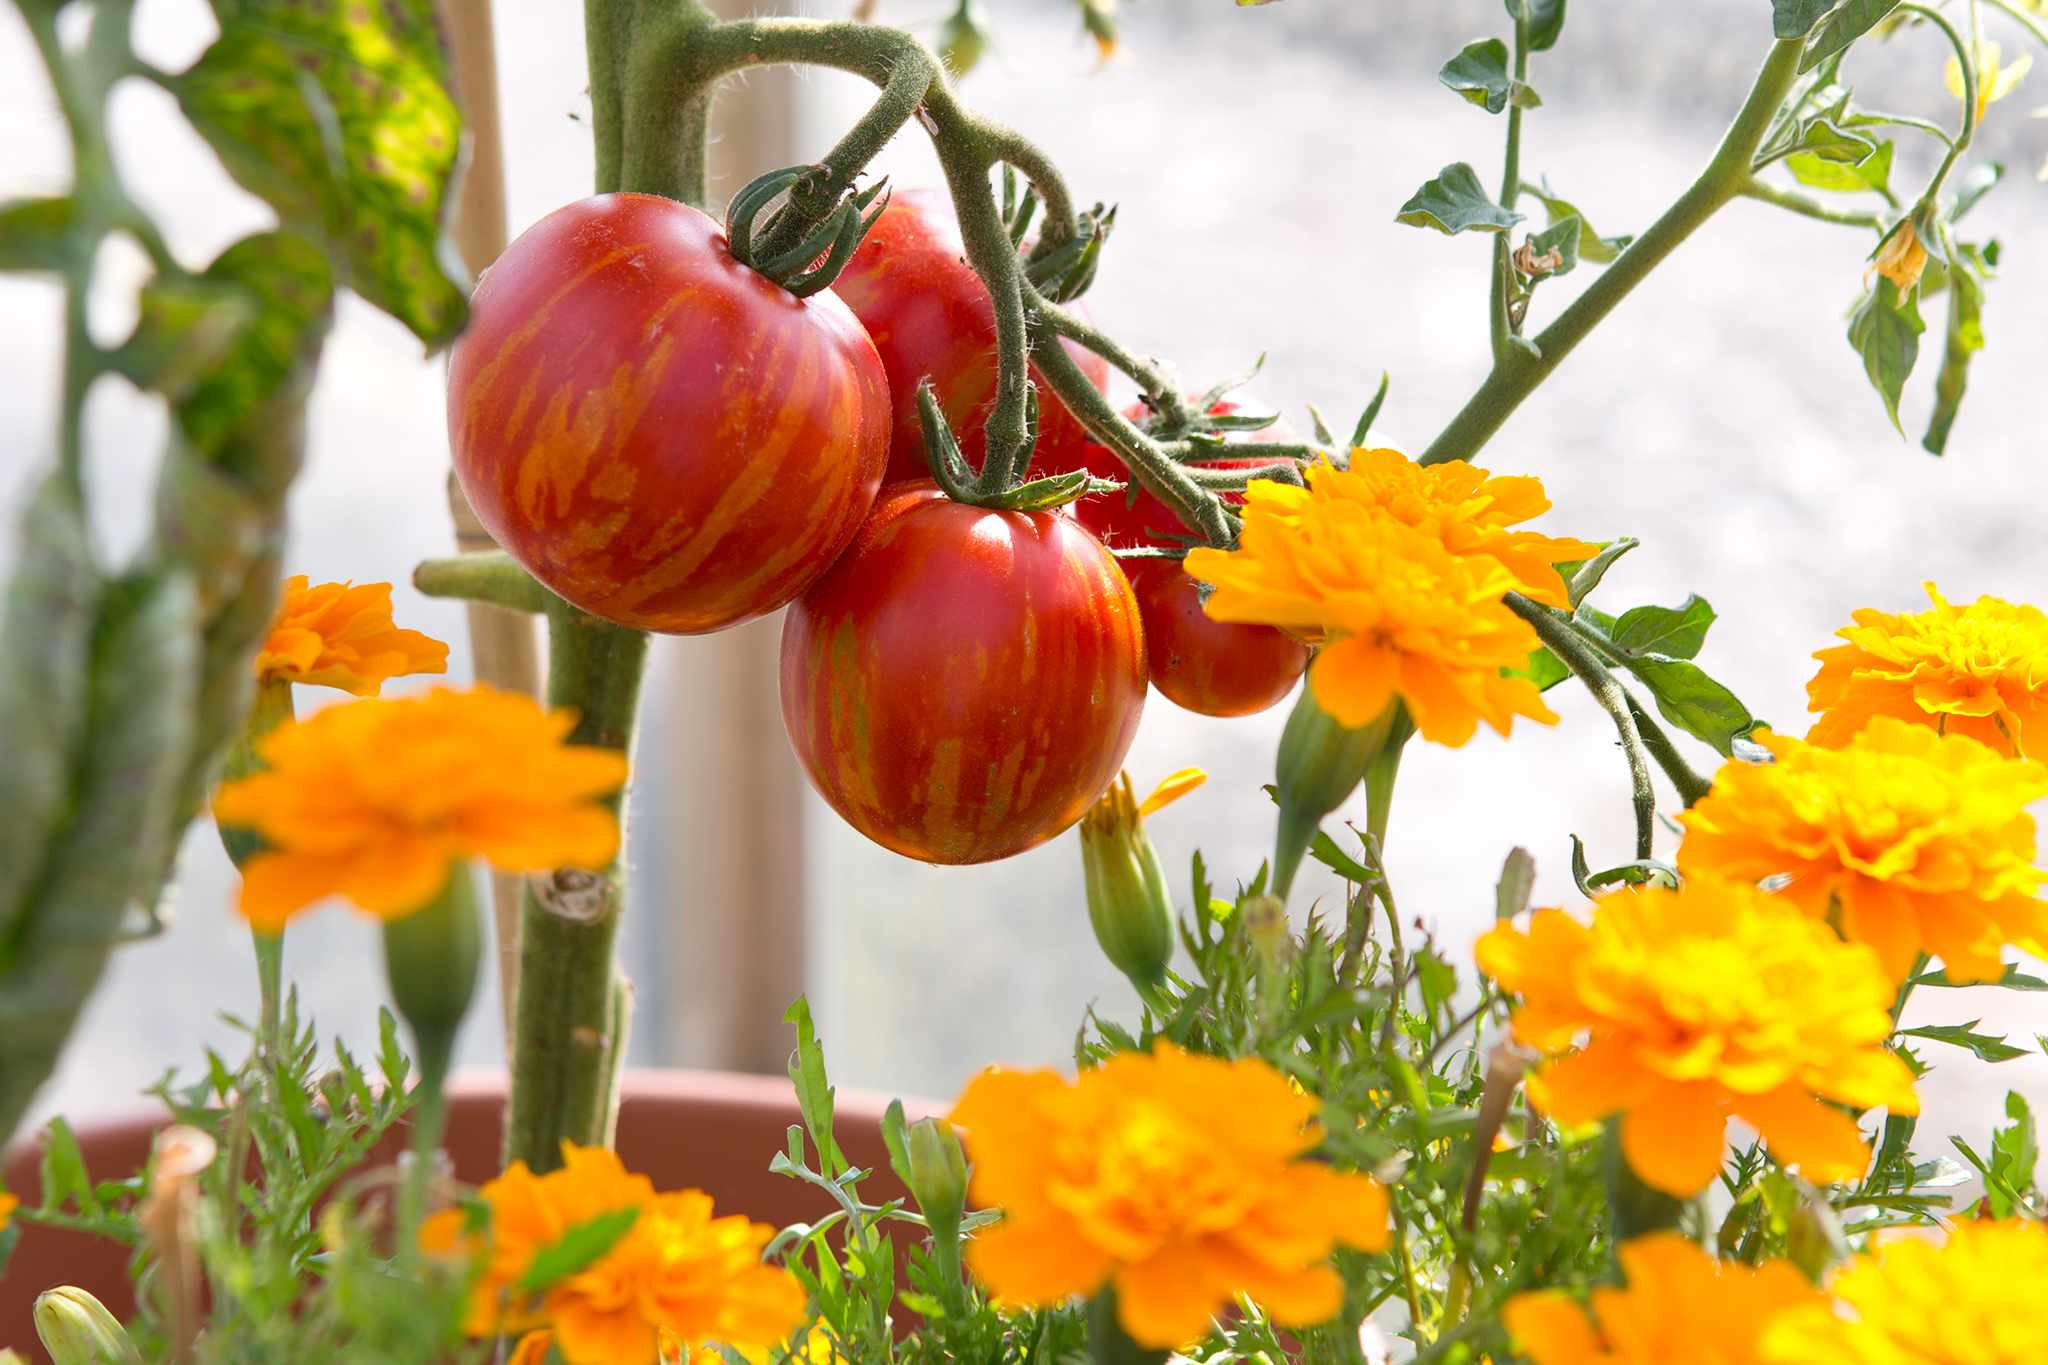 Tomatoes and marigolds